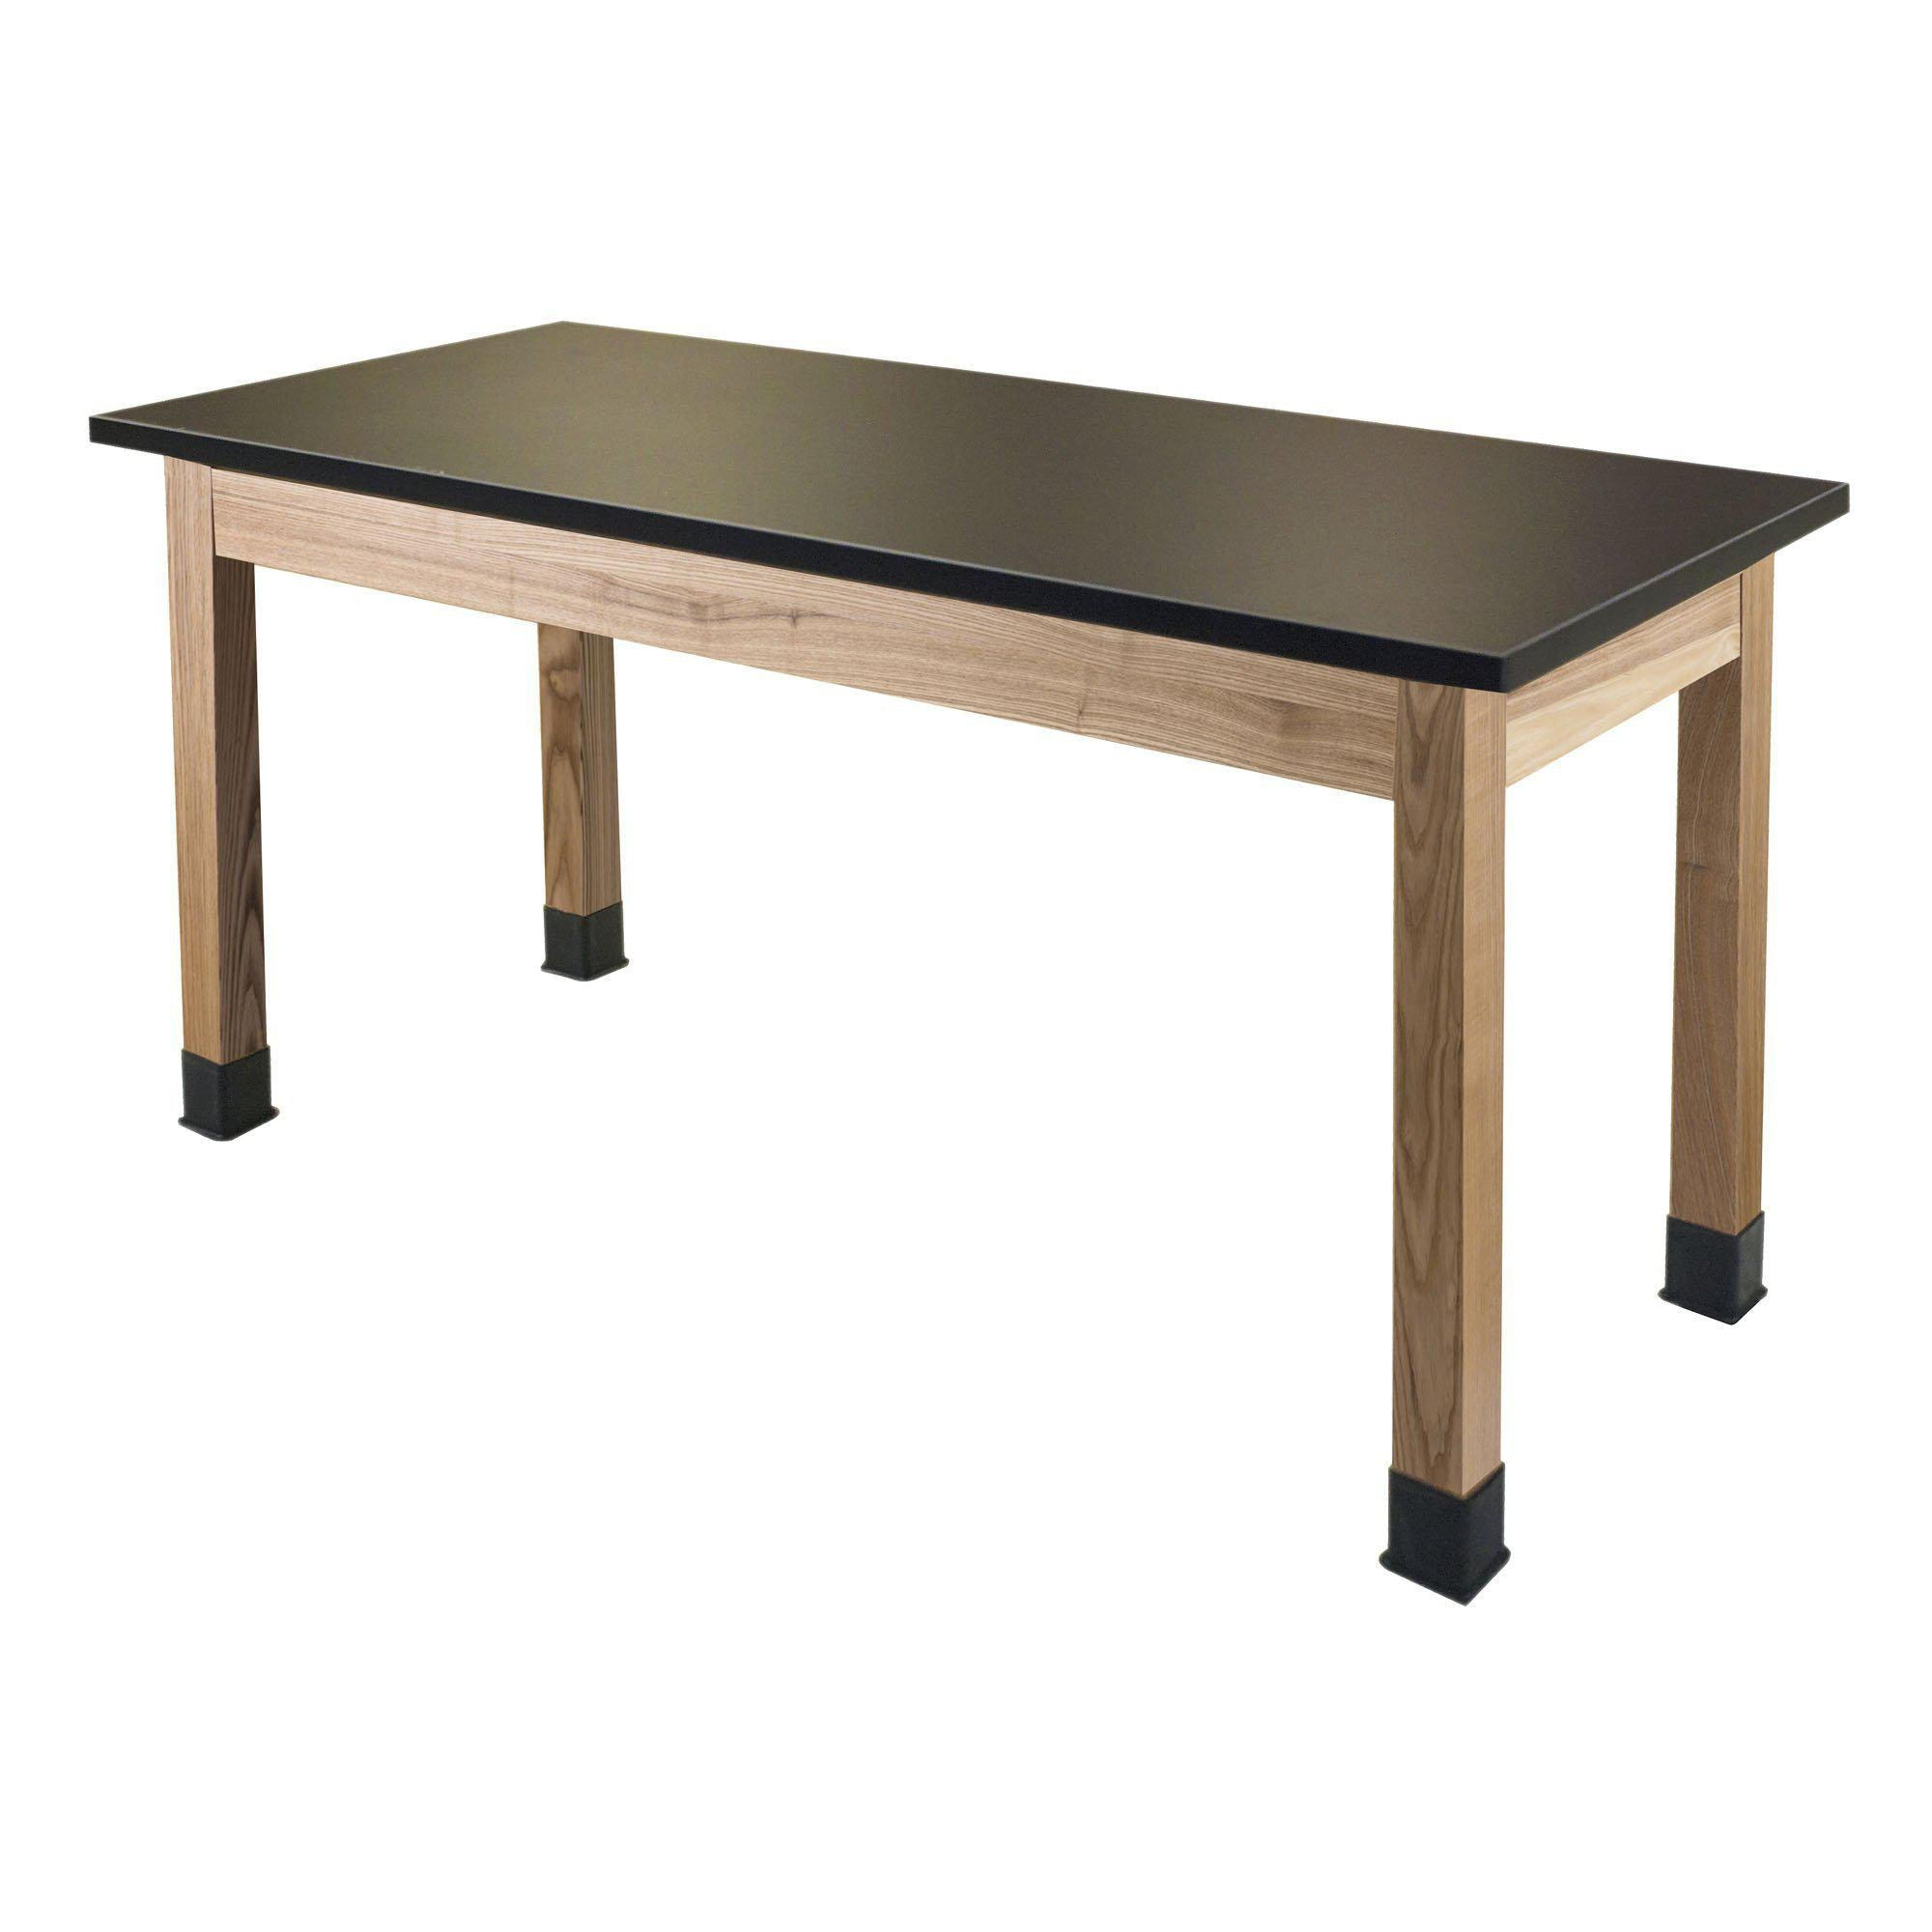 NPS Chemical Resistant Science Lab Tables with Chem Res High Pressure Laminate Top, Solid Wood Legs